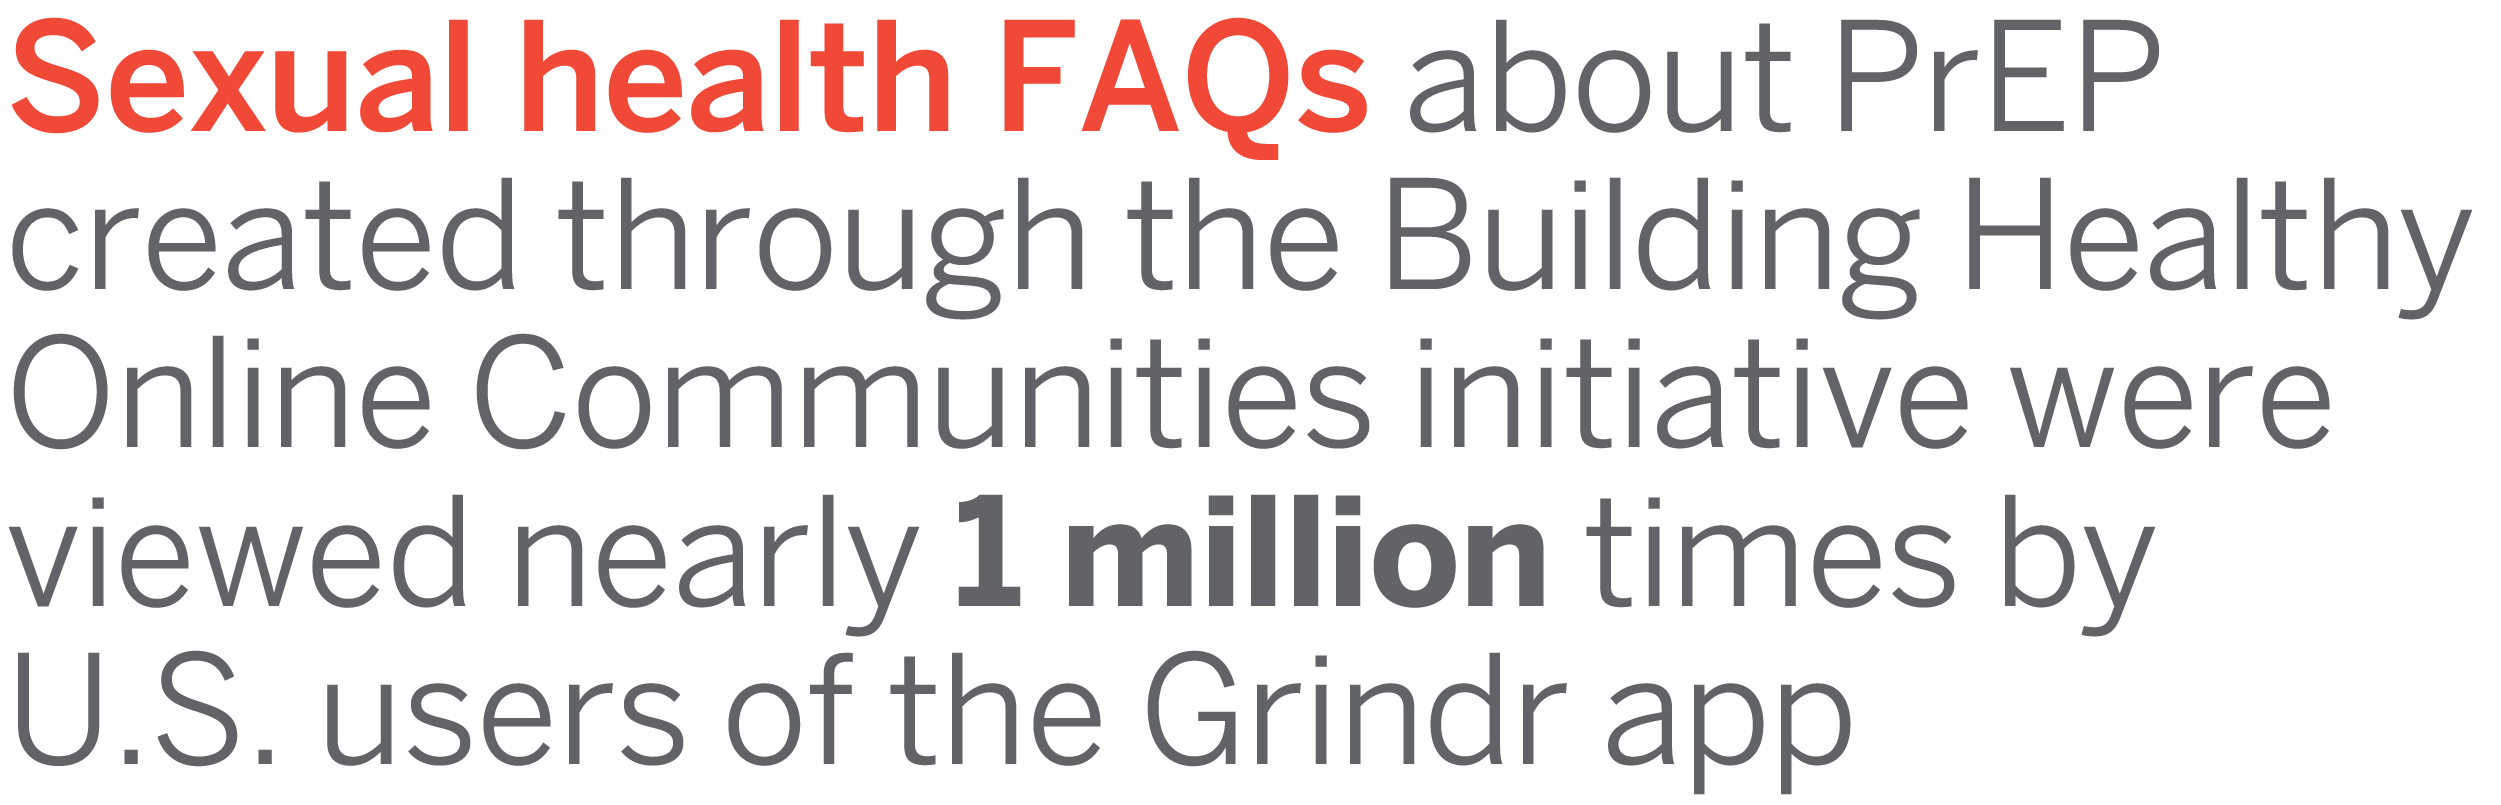 Sexual health FAQs about PrEP created through the Building Healthy Online Communities initiative were viewed nearly 1 million times by U.S. users of the Grindr app